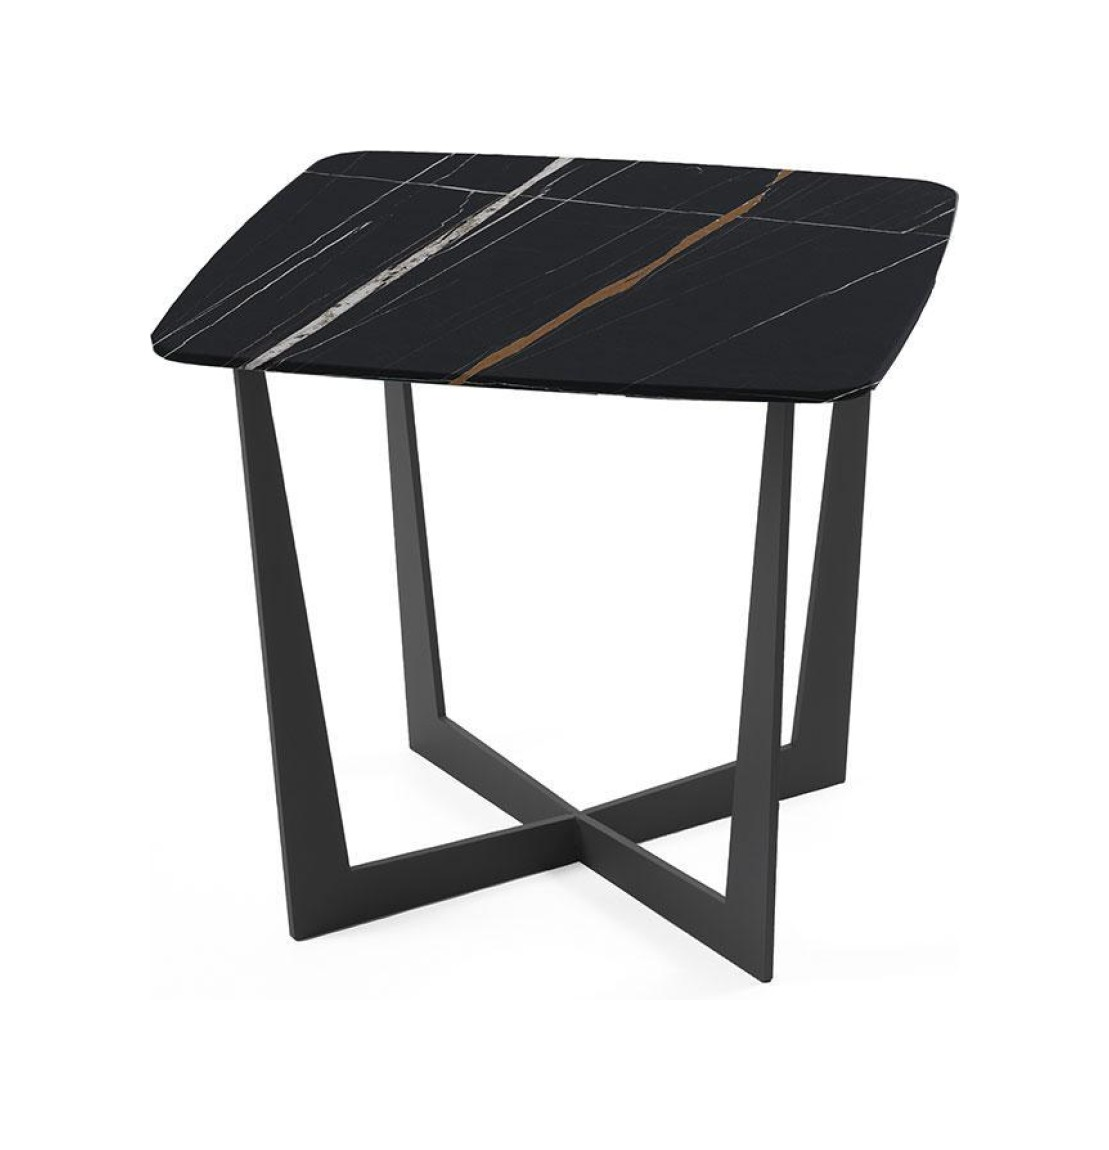 Pezzani Stone Fixed Square Coffee Table Painted Steel Structure